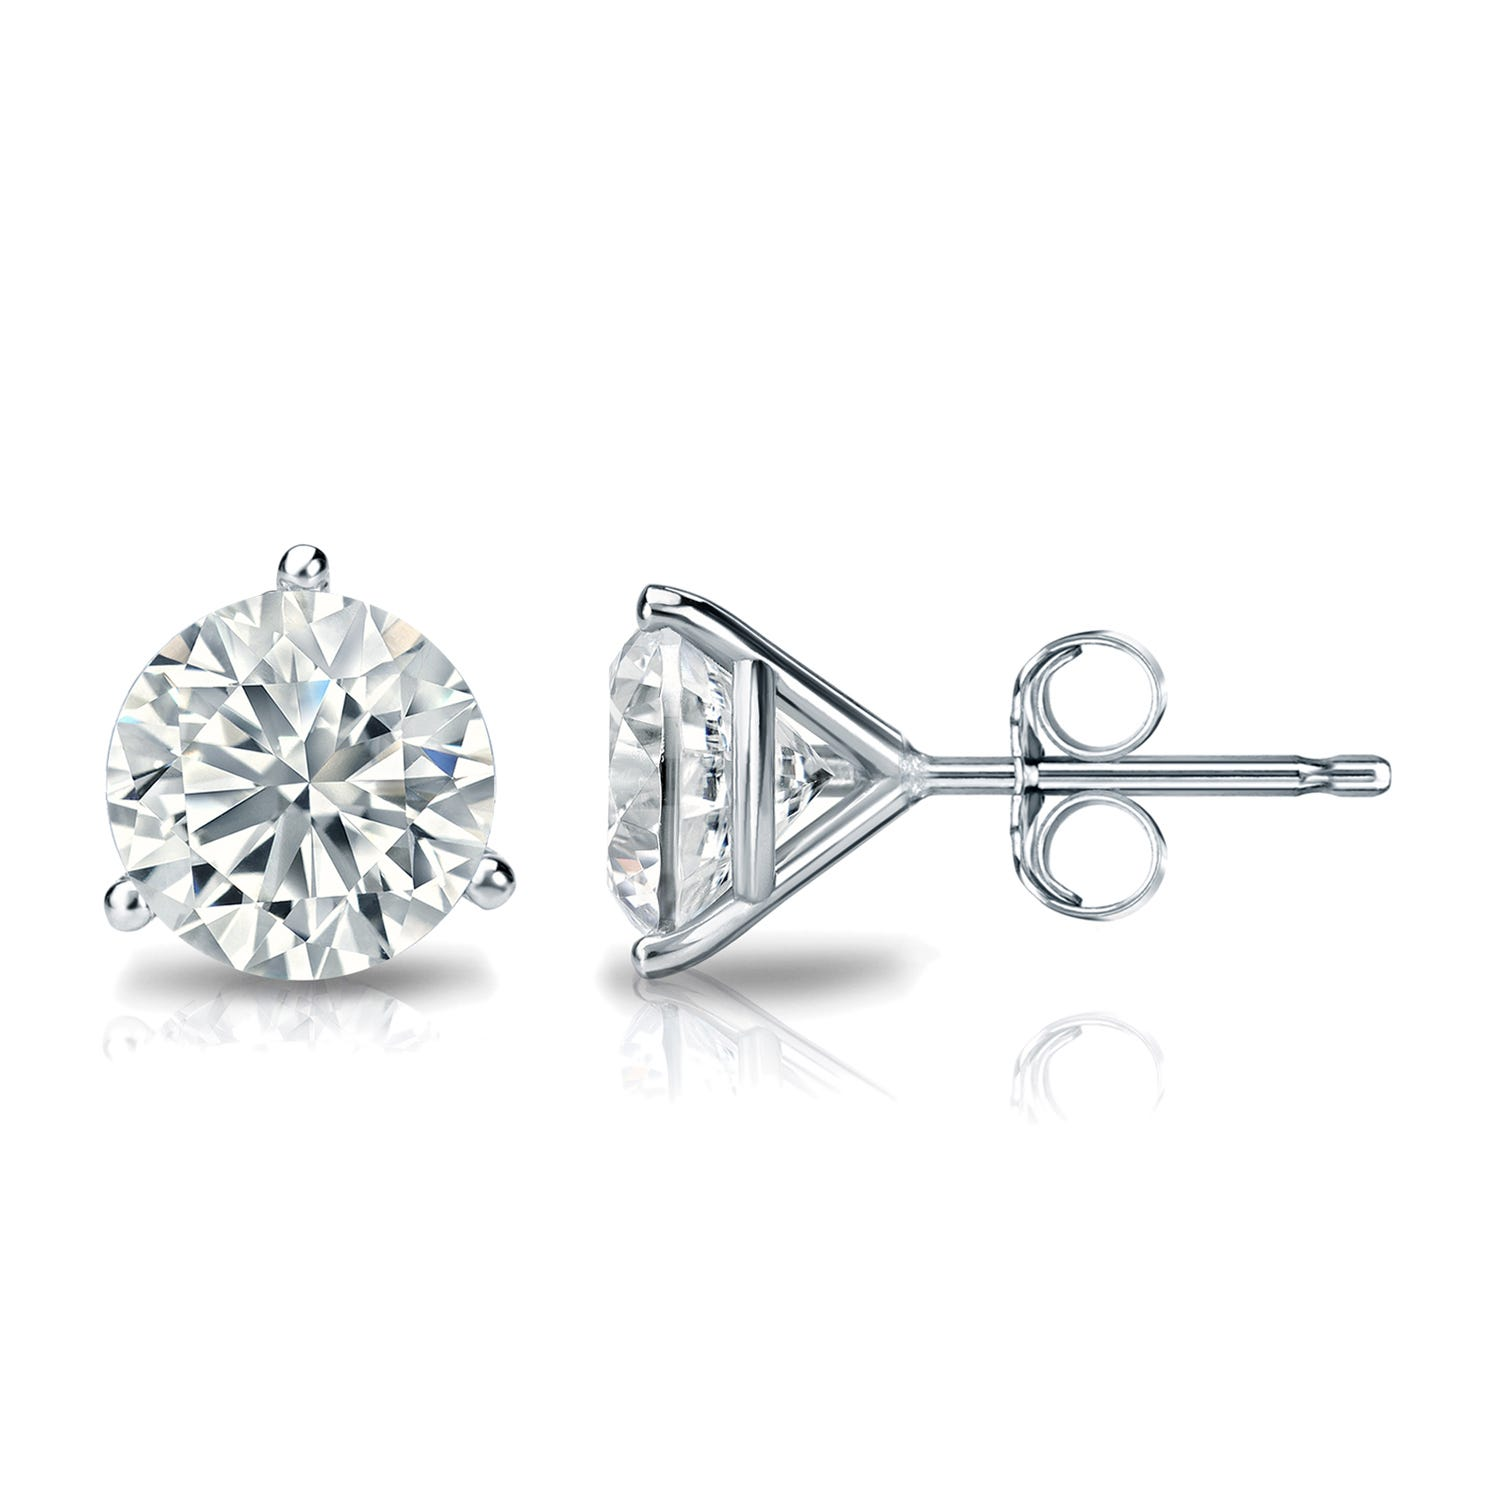 1-1/2 CTTW Round Diamond Solitaire Stud Earrings IJ VS2 in 18K White Gold IGI Certified 3-Prong Setting